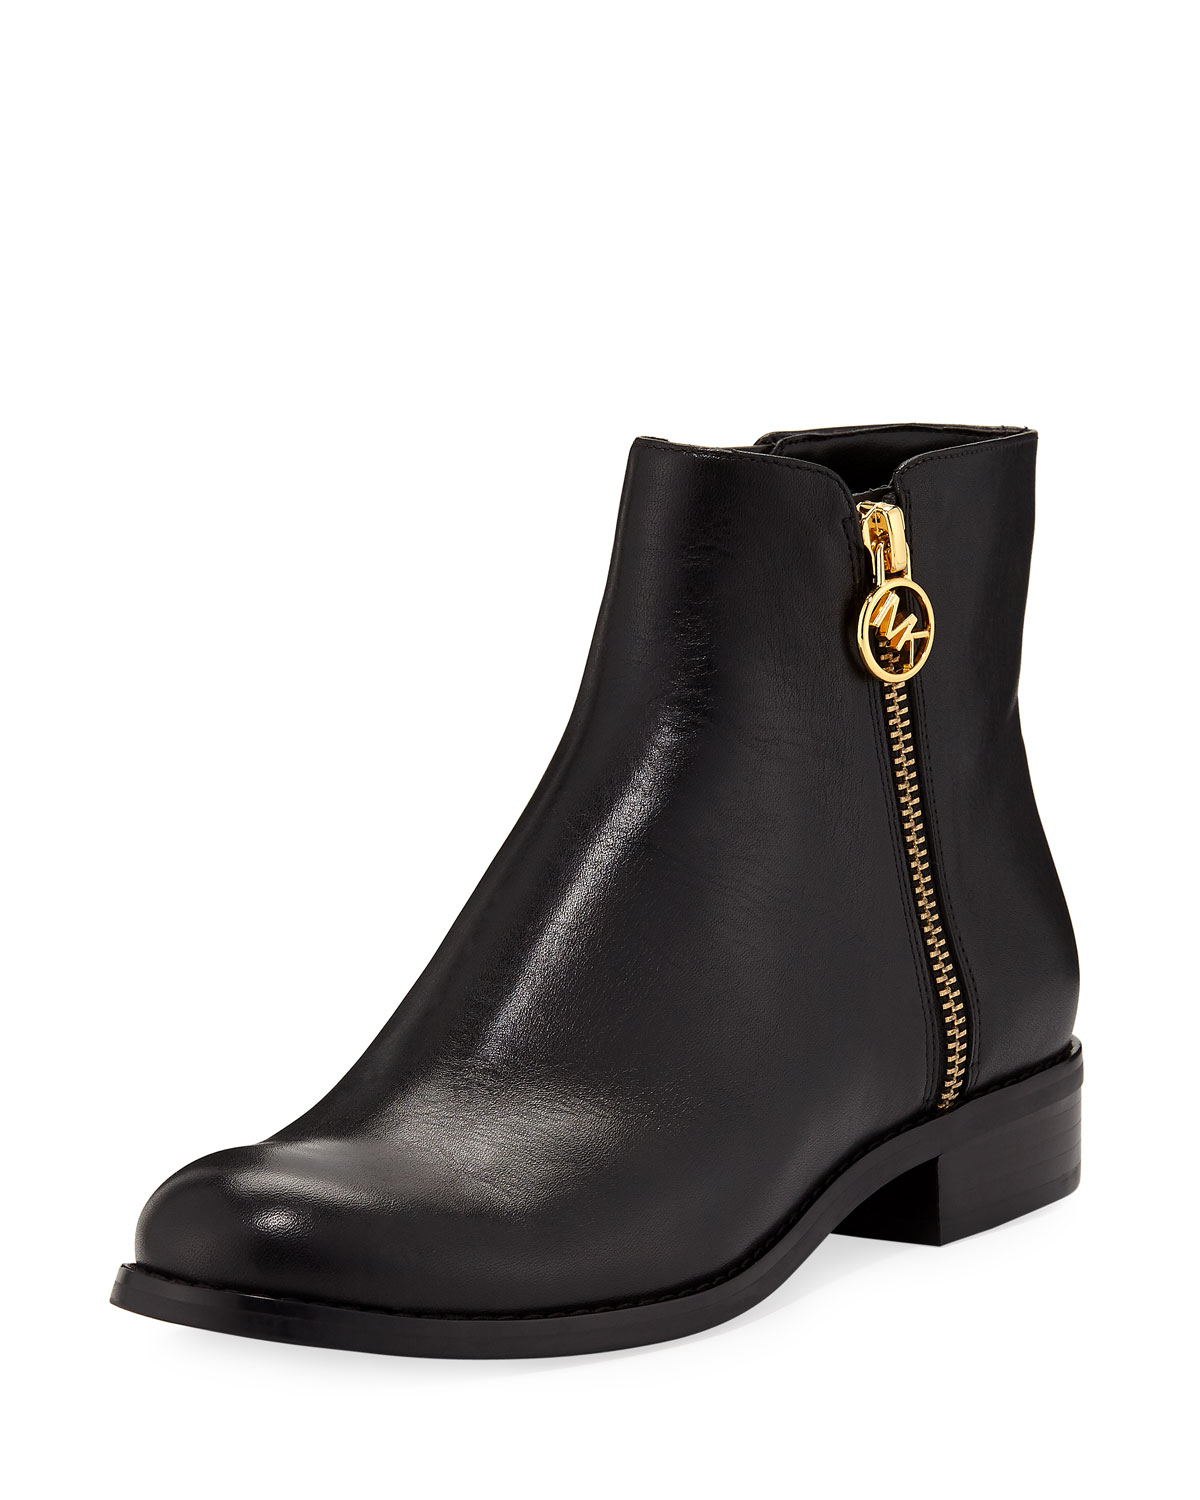 MICHAEL MICHAEL KORS JAYCIE FLAT VACHETTA LEATHER ZIP BOOTIES